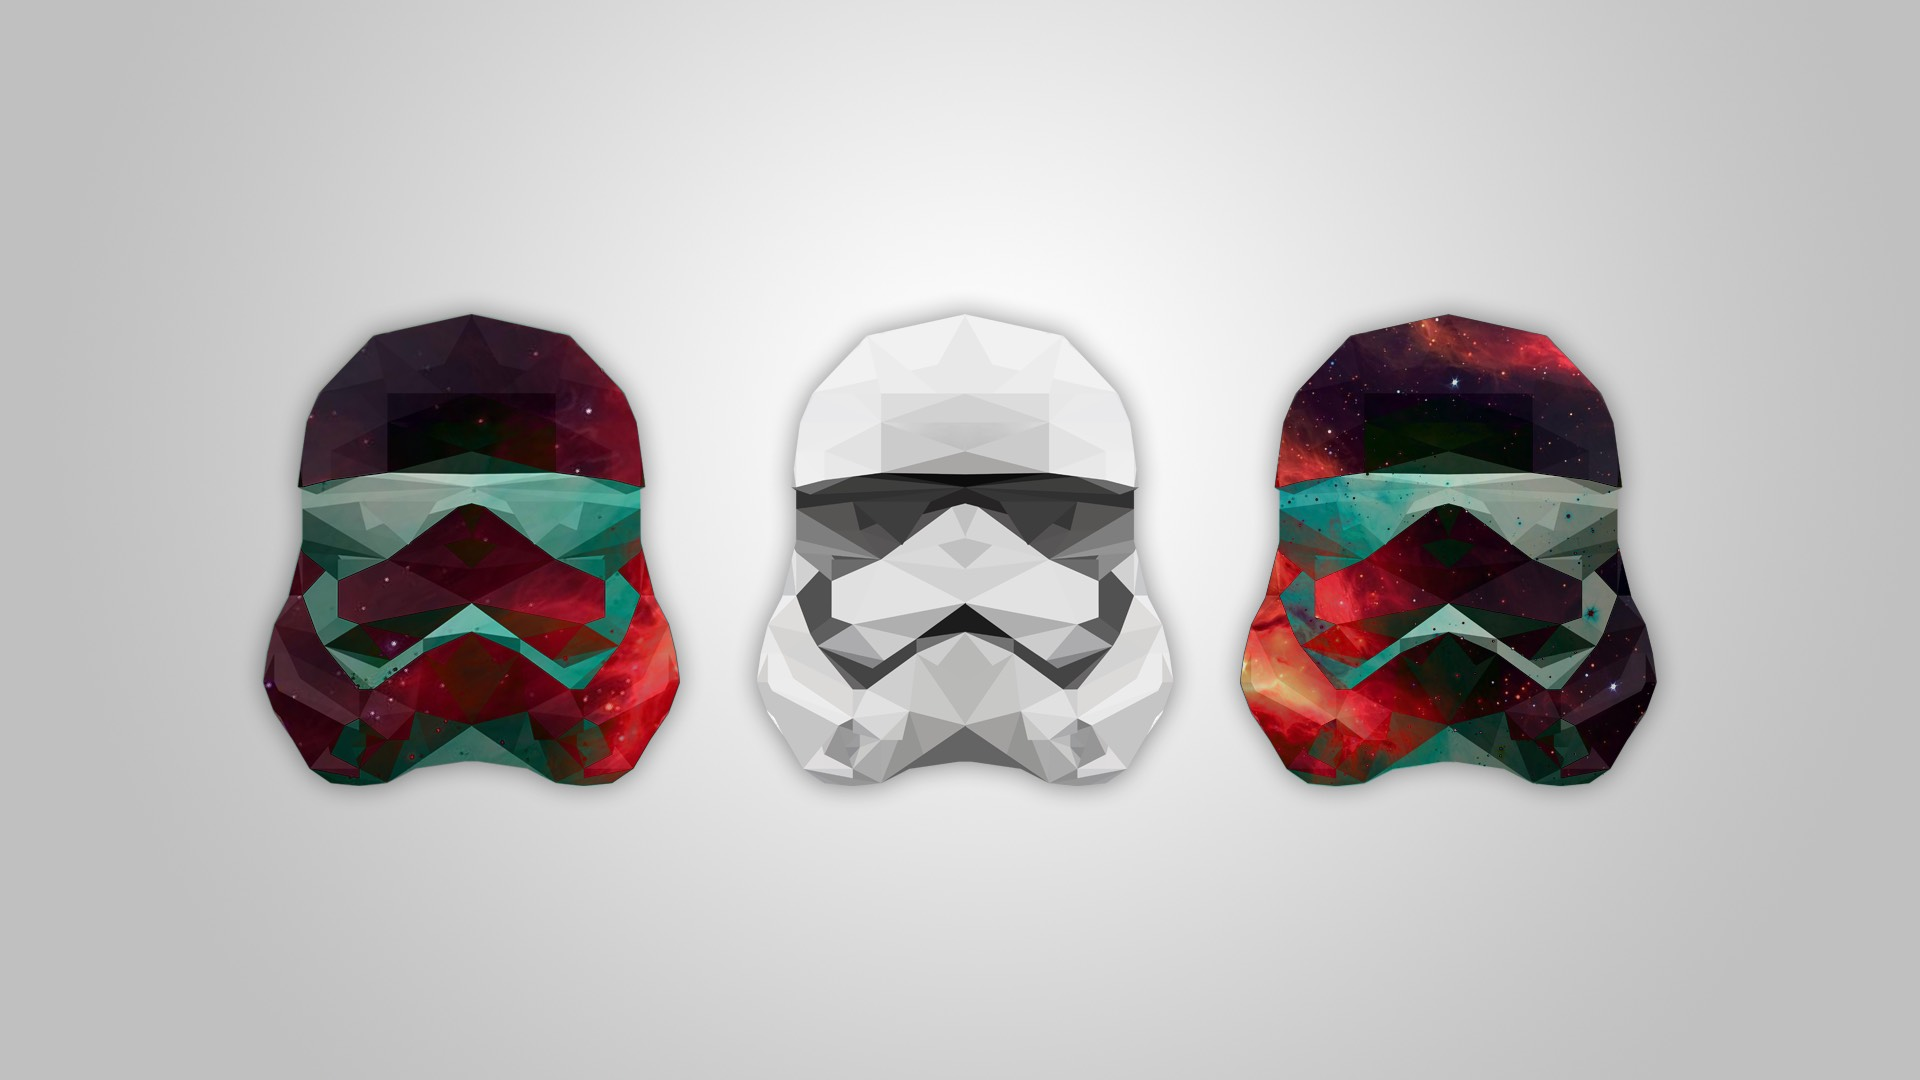 Abstract Artistic Helmet Stormtrooper Hd Artist 4k Wallpapers Images Backgrounds Photos And Pictures